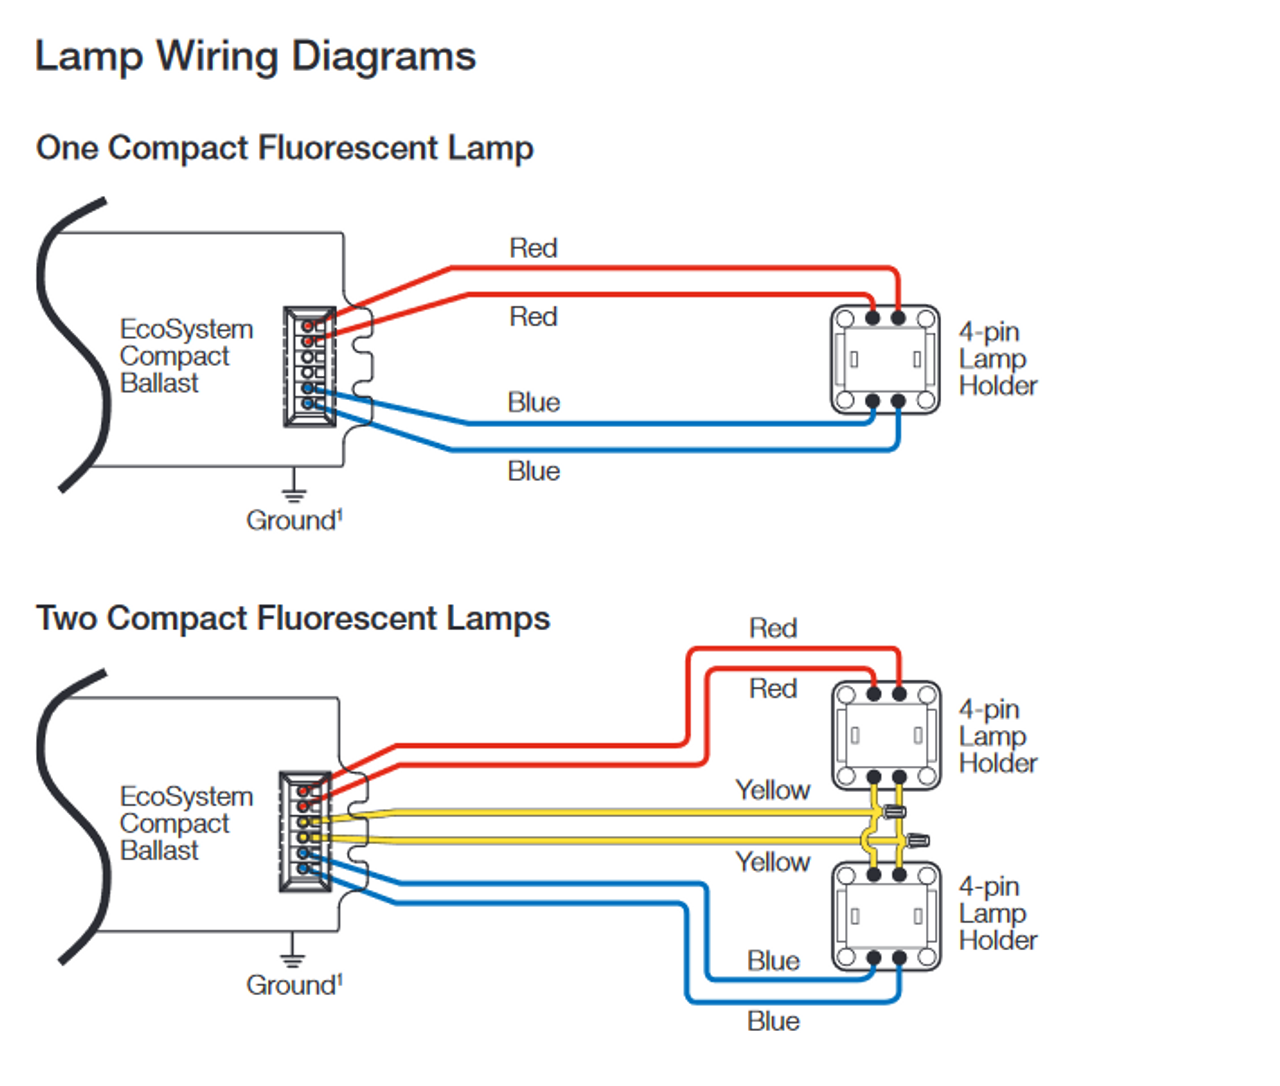 Wiring Diagram For Halo Recessed Lights. Wiring 3-way Switch ... on